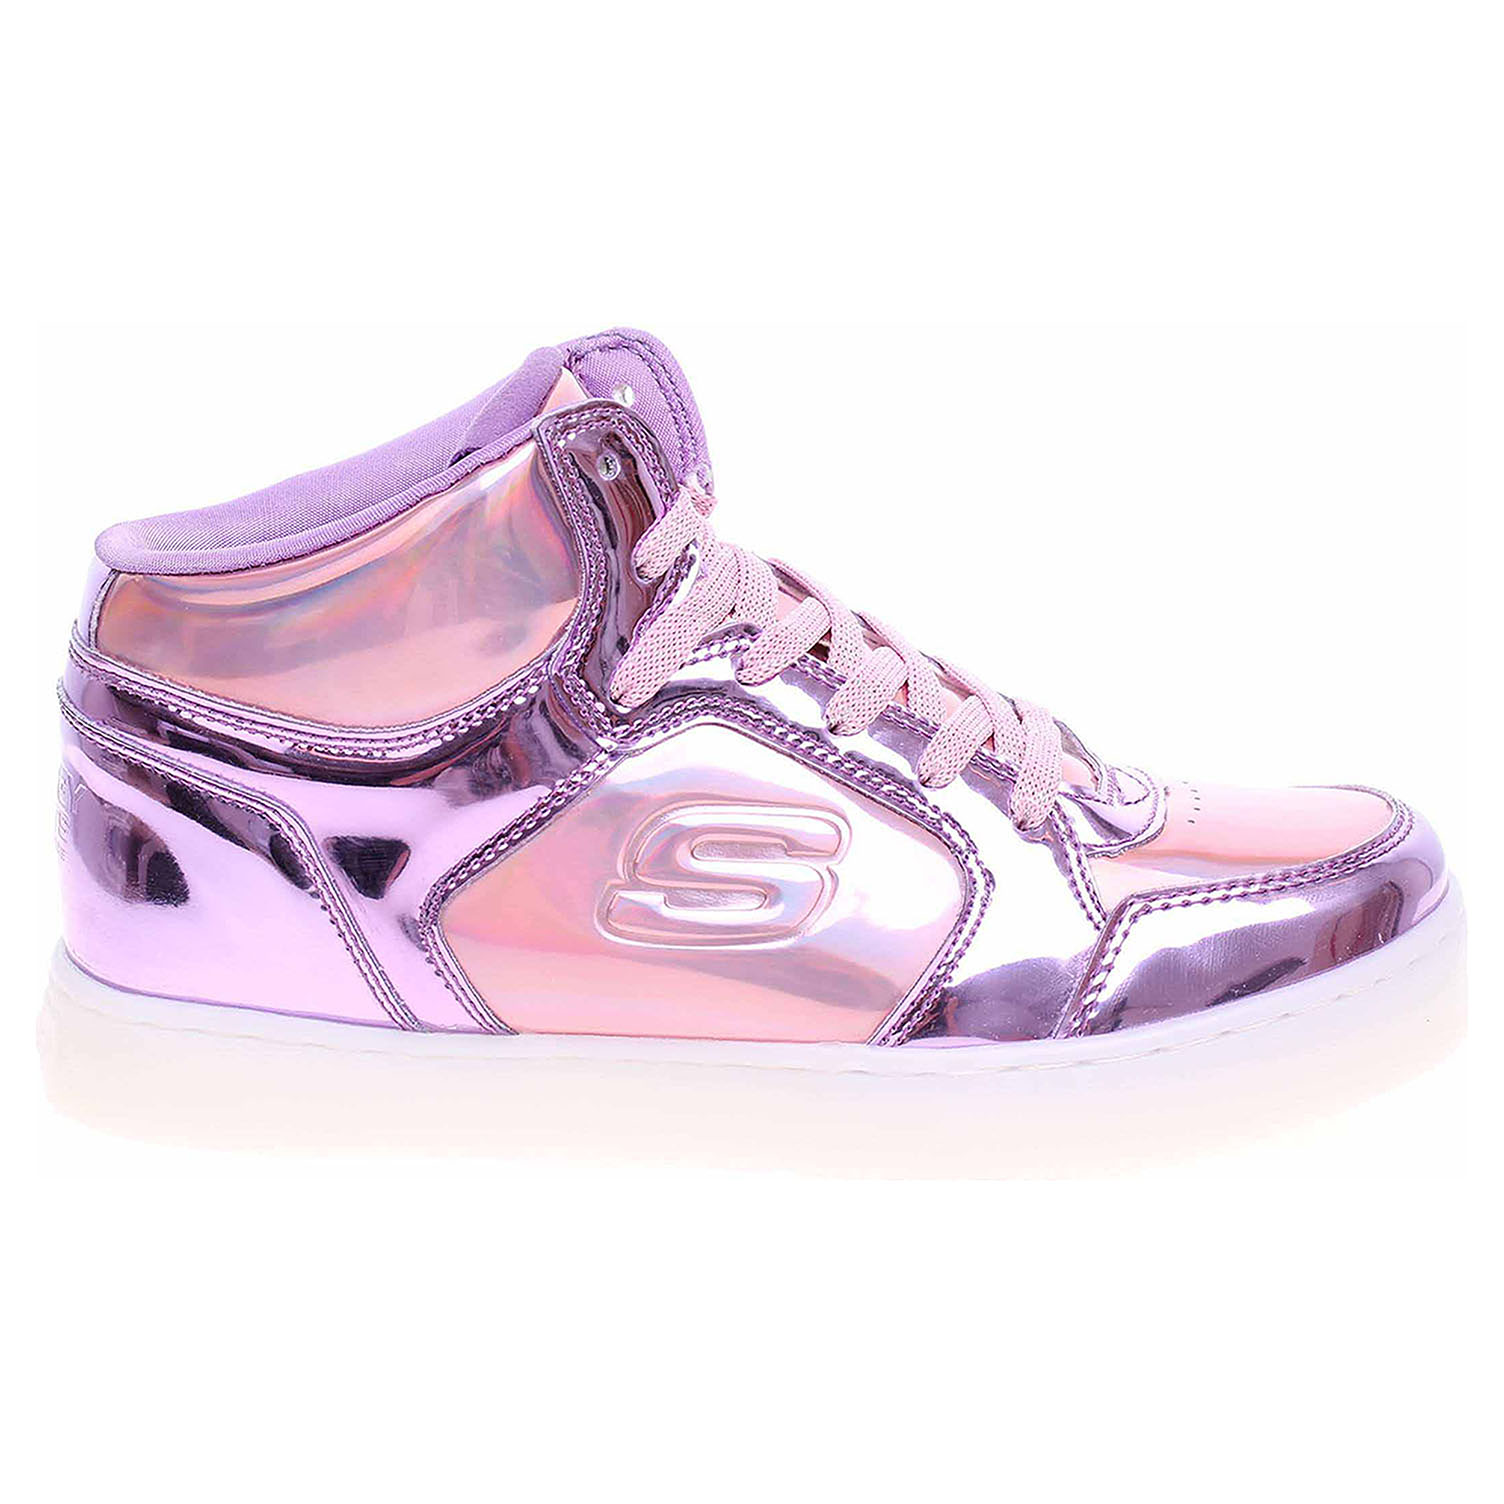 detail Skechers S Lights-Energy Lights - Shiny Brights pink-purple